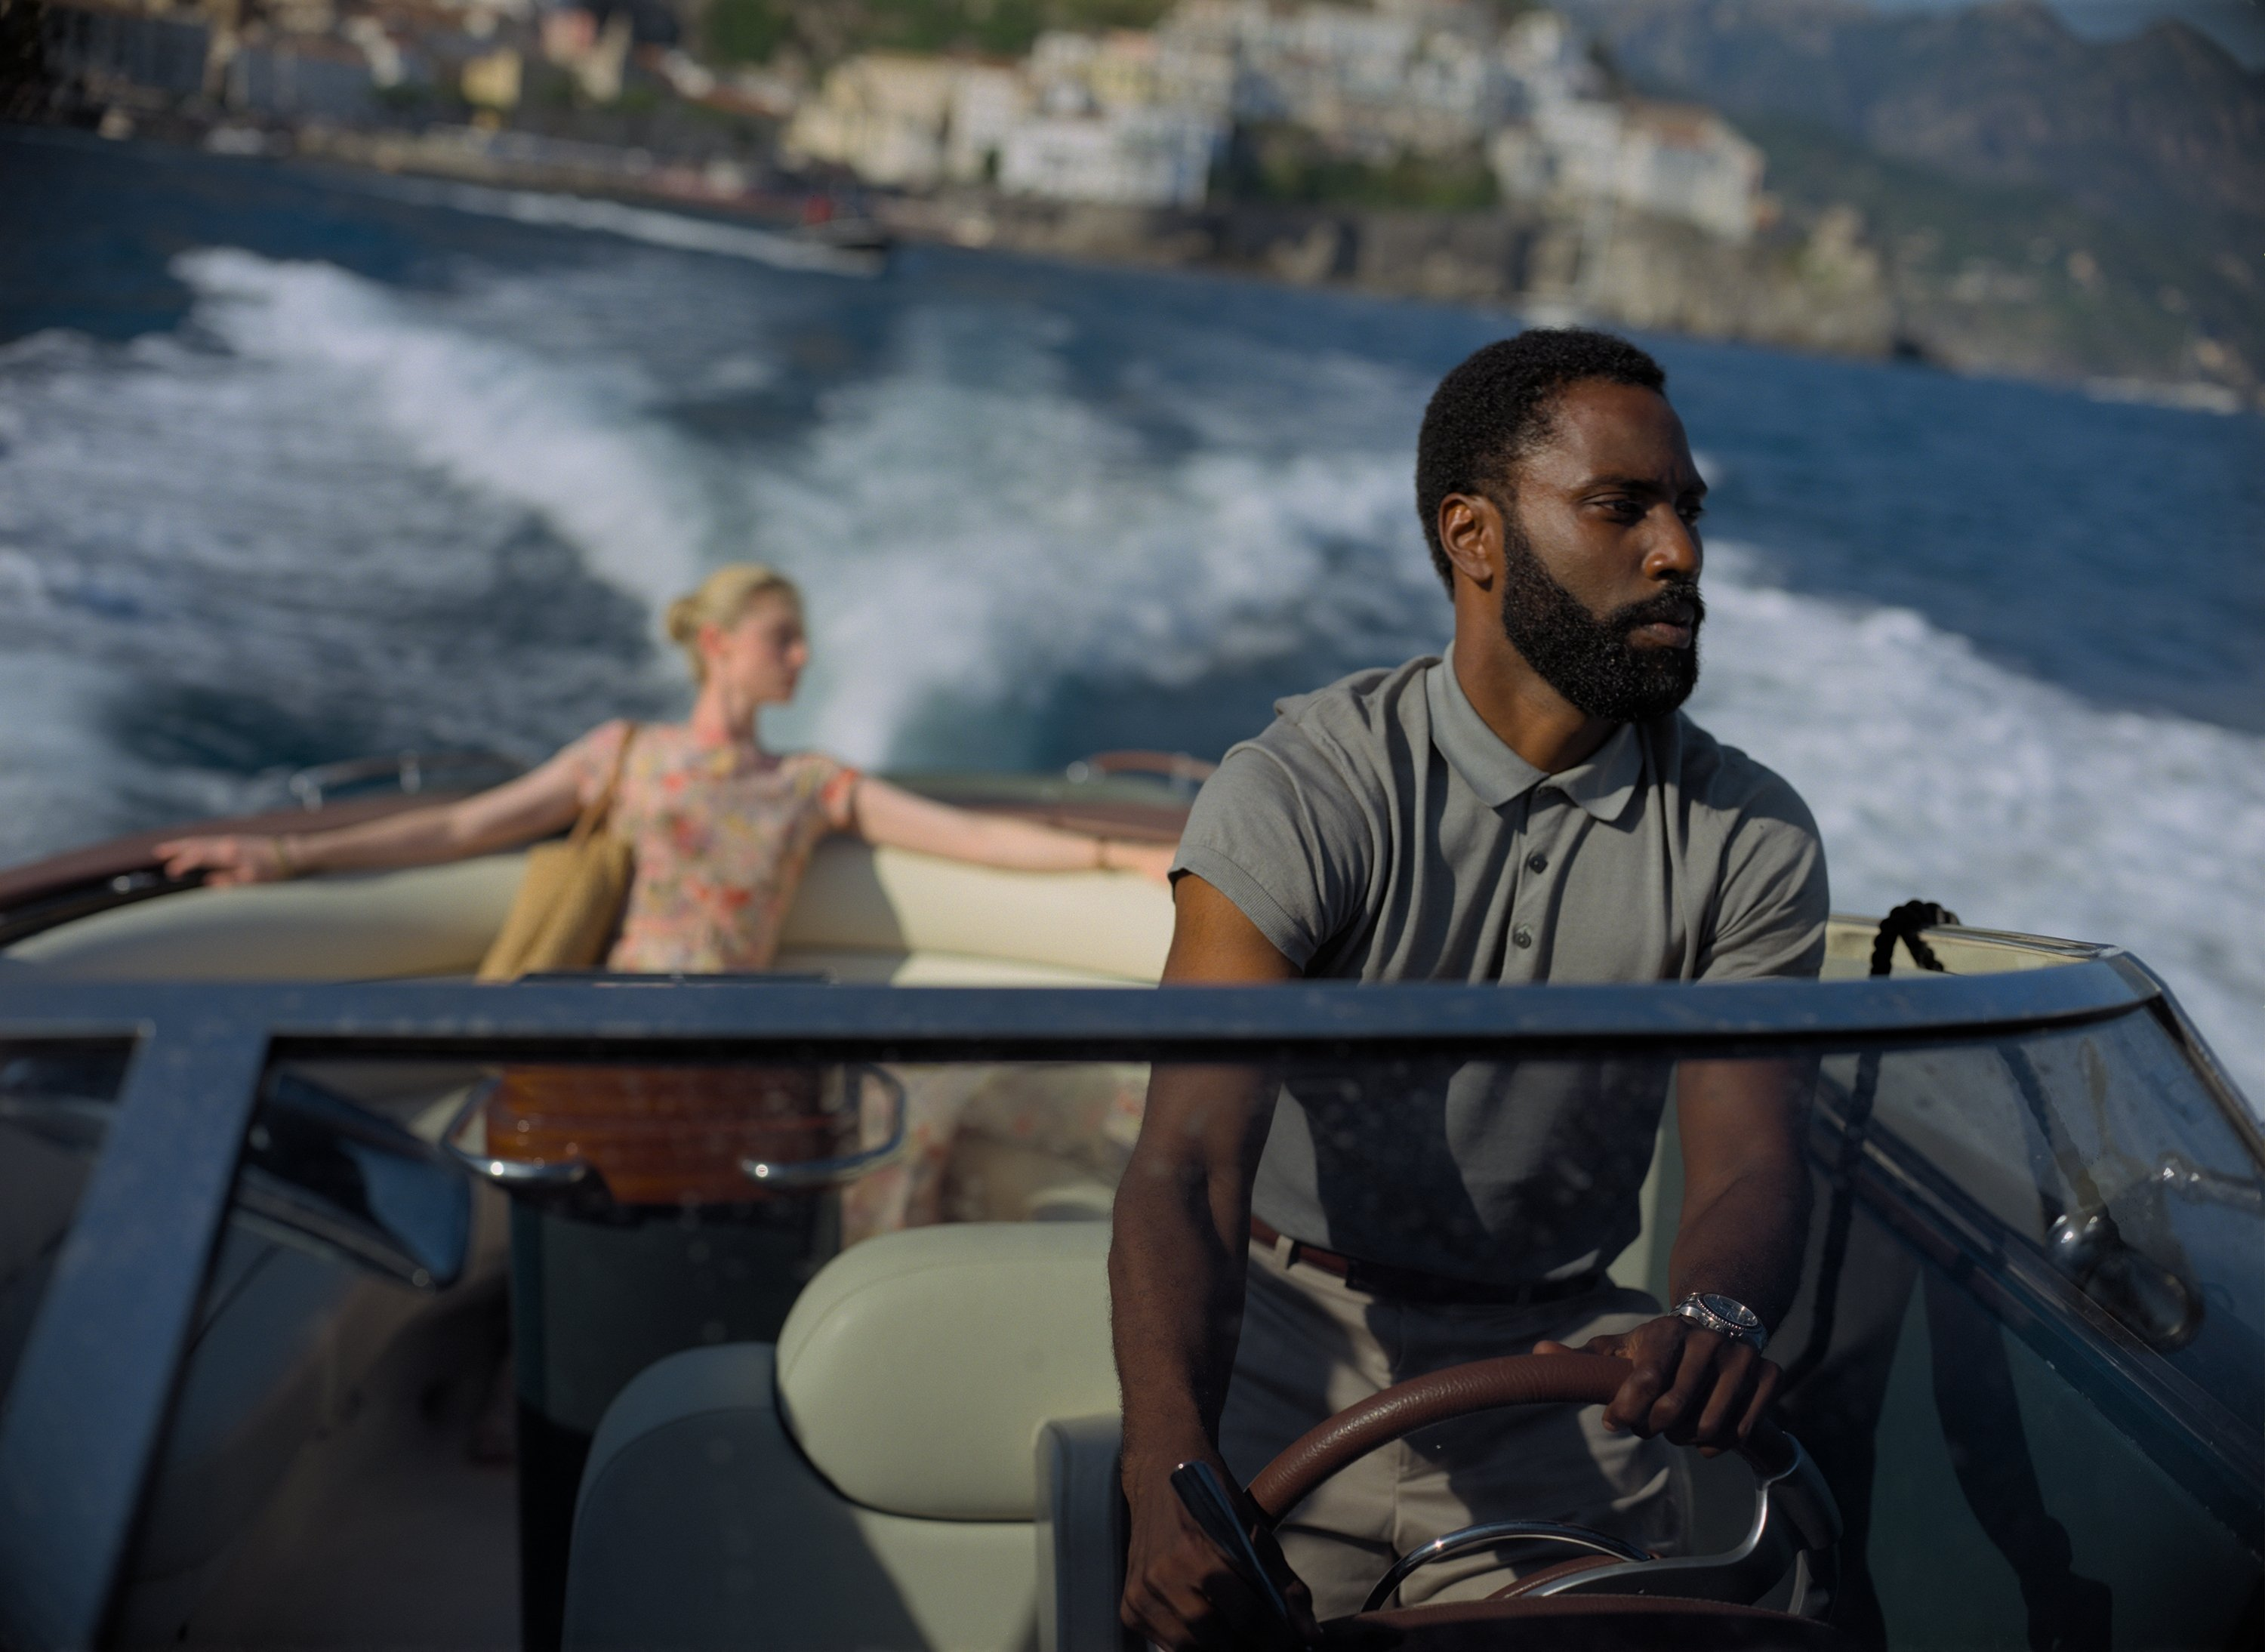 John David Washington as The Protagonist and Elizabeth Debicki as Kat in the background. (AP PHOTO)